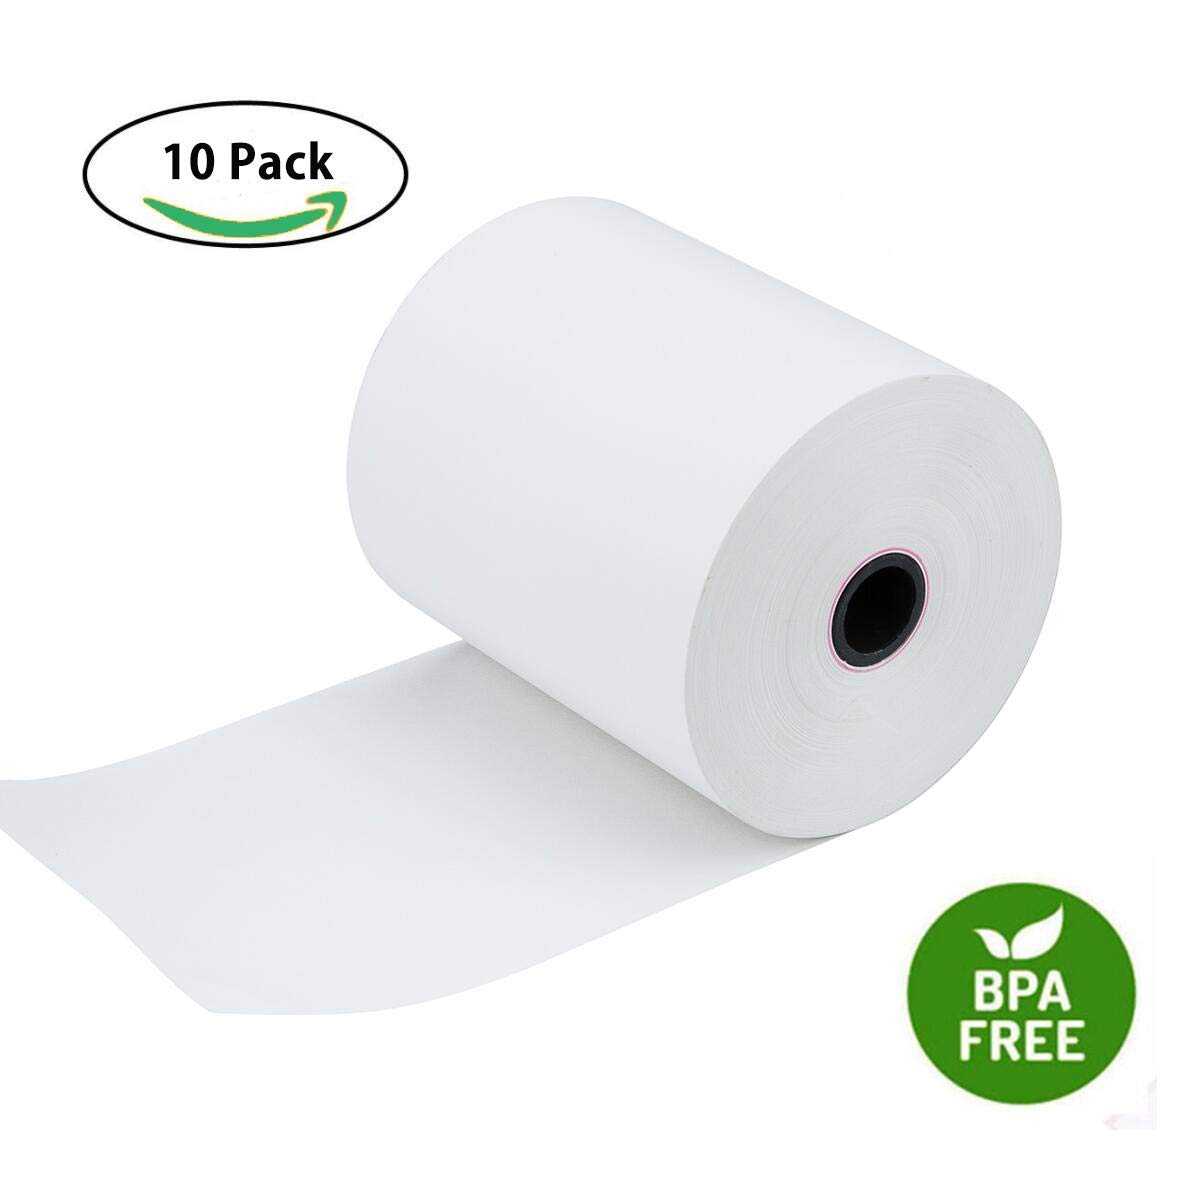 Thermal Paper Rolls 3 1/8'' x 230' Thermal POS Receipt Cash Register Paper Roll by Hapaper Brand (10 Rolls/Box)